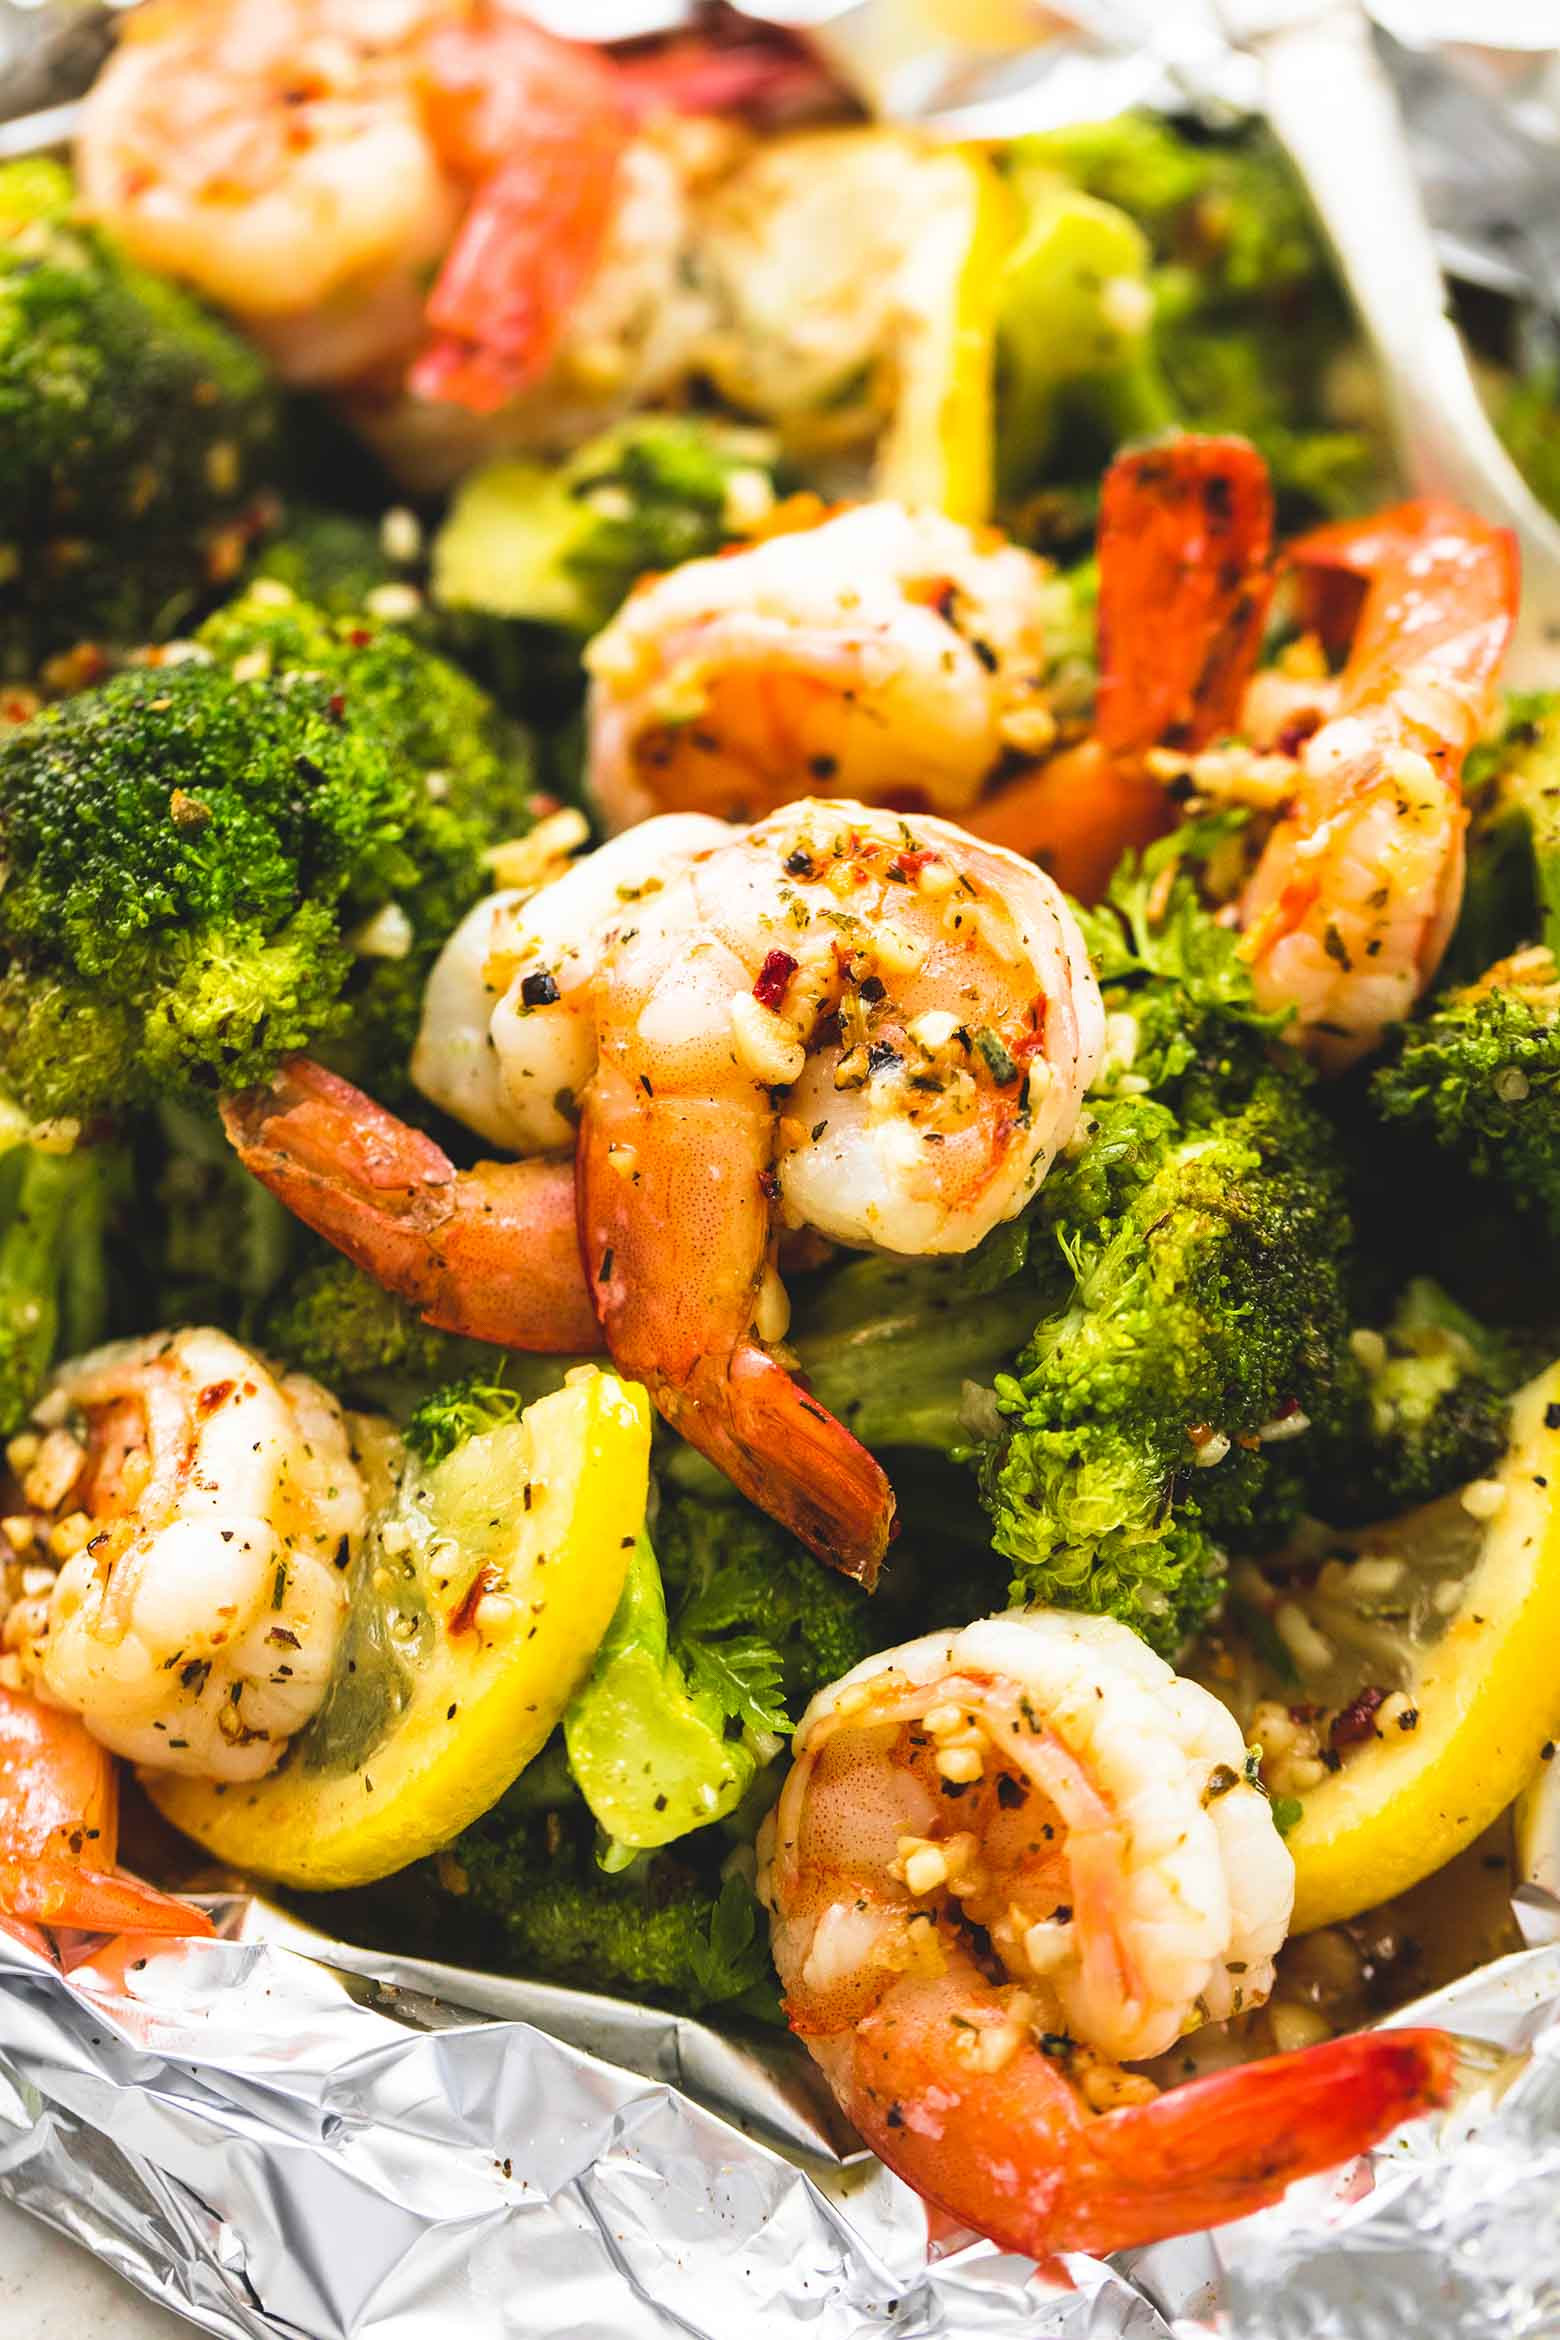 Shrimp With Broccoli  Lemon Herb Shrimp and Broccoli Foil Packs